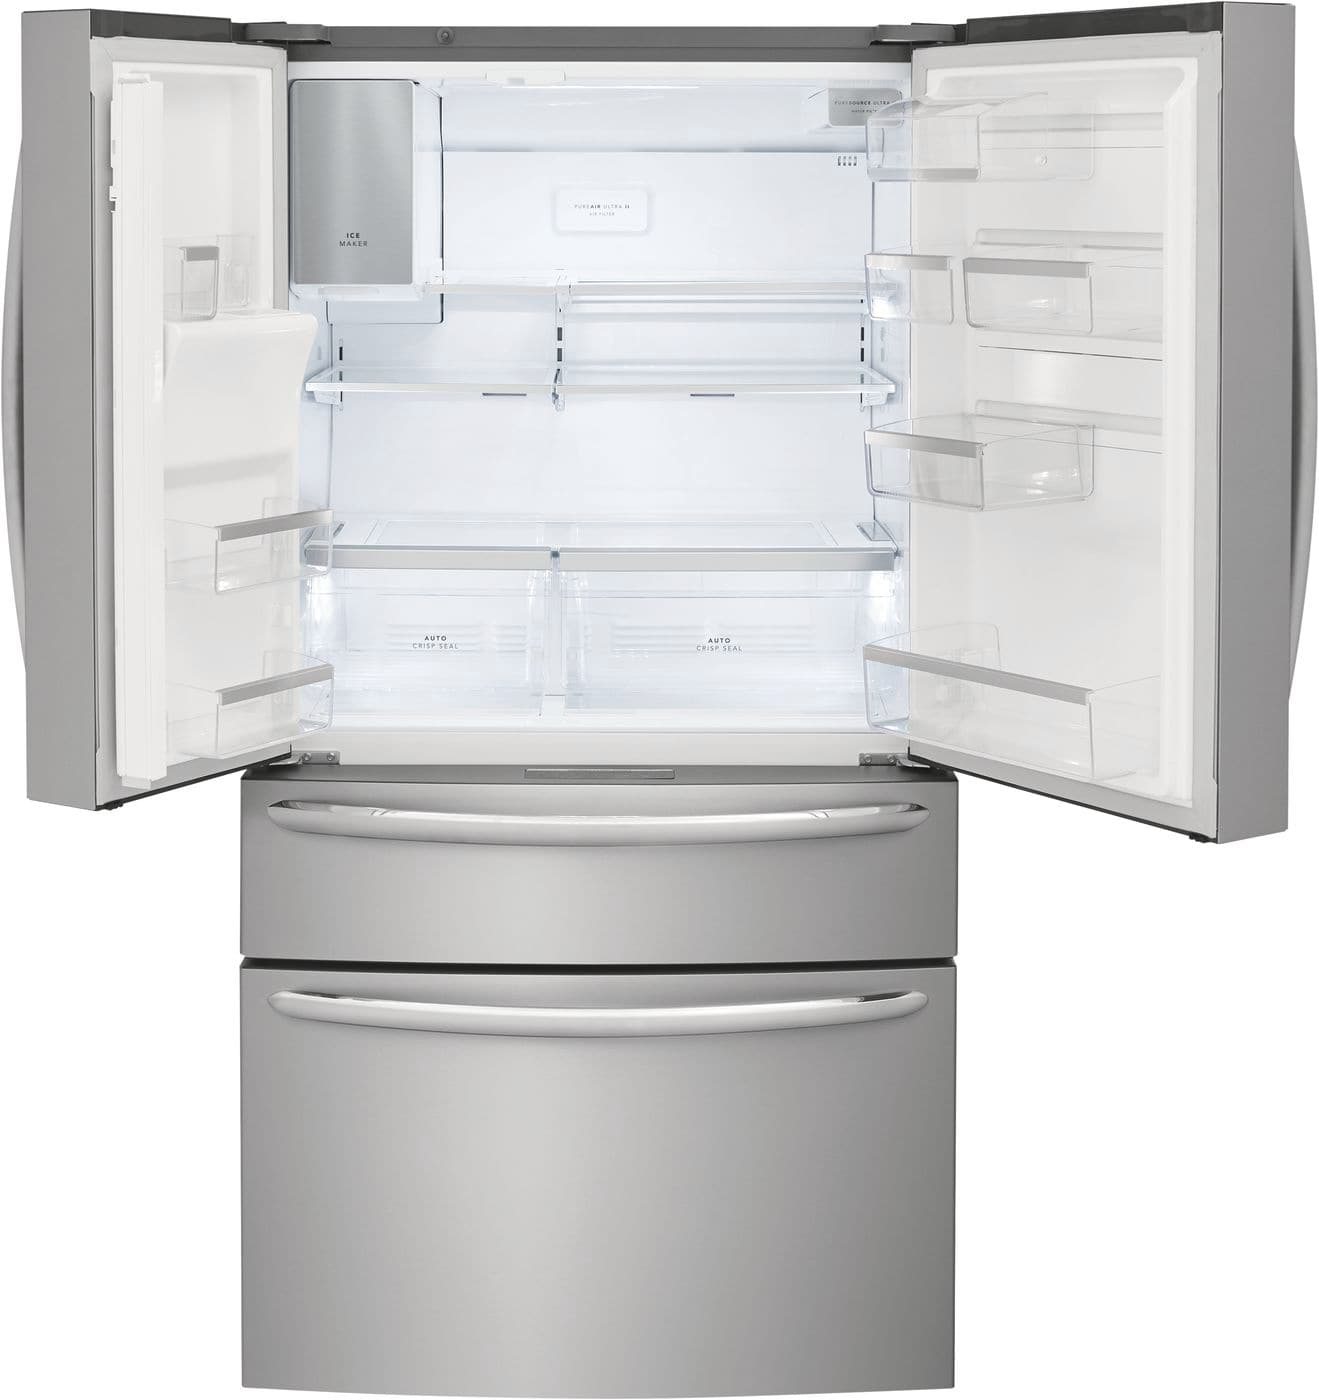 Model: FG4H2272UF | 21.8 Cu. Ft. Counter-Depth 4-Door French Door Refrigerator